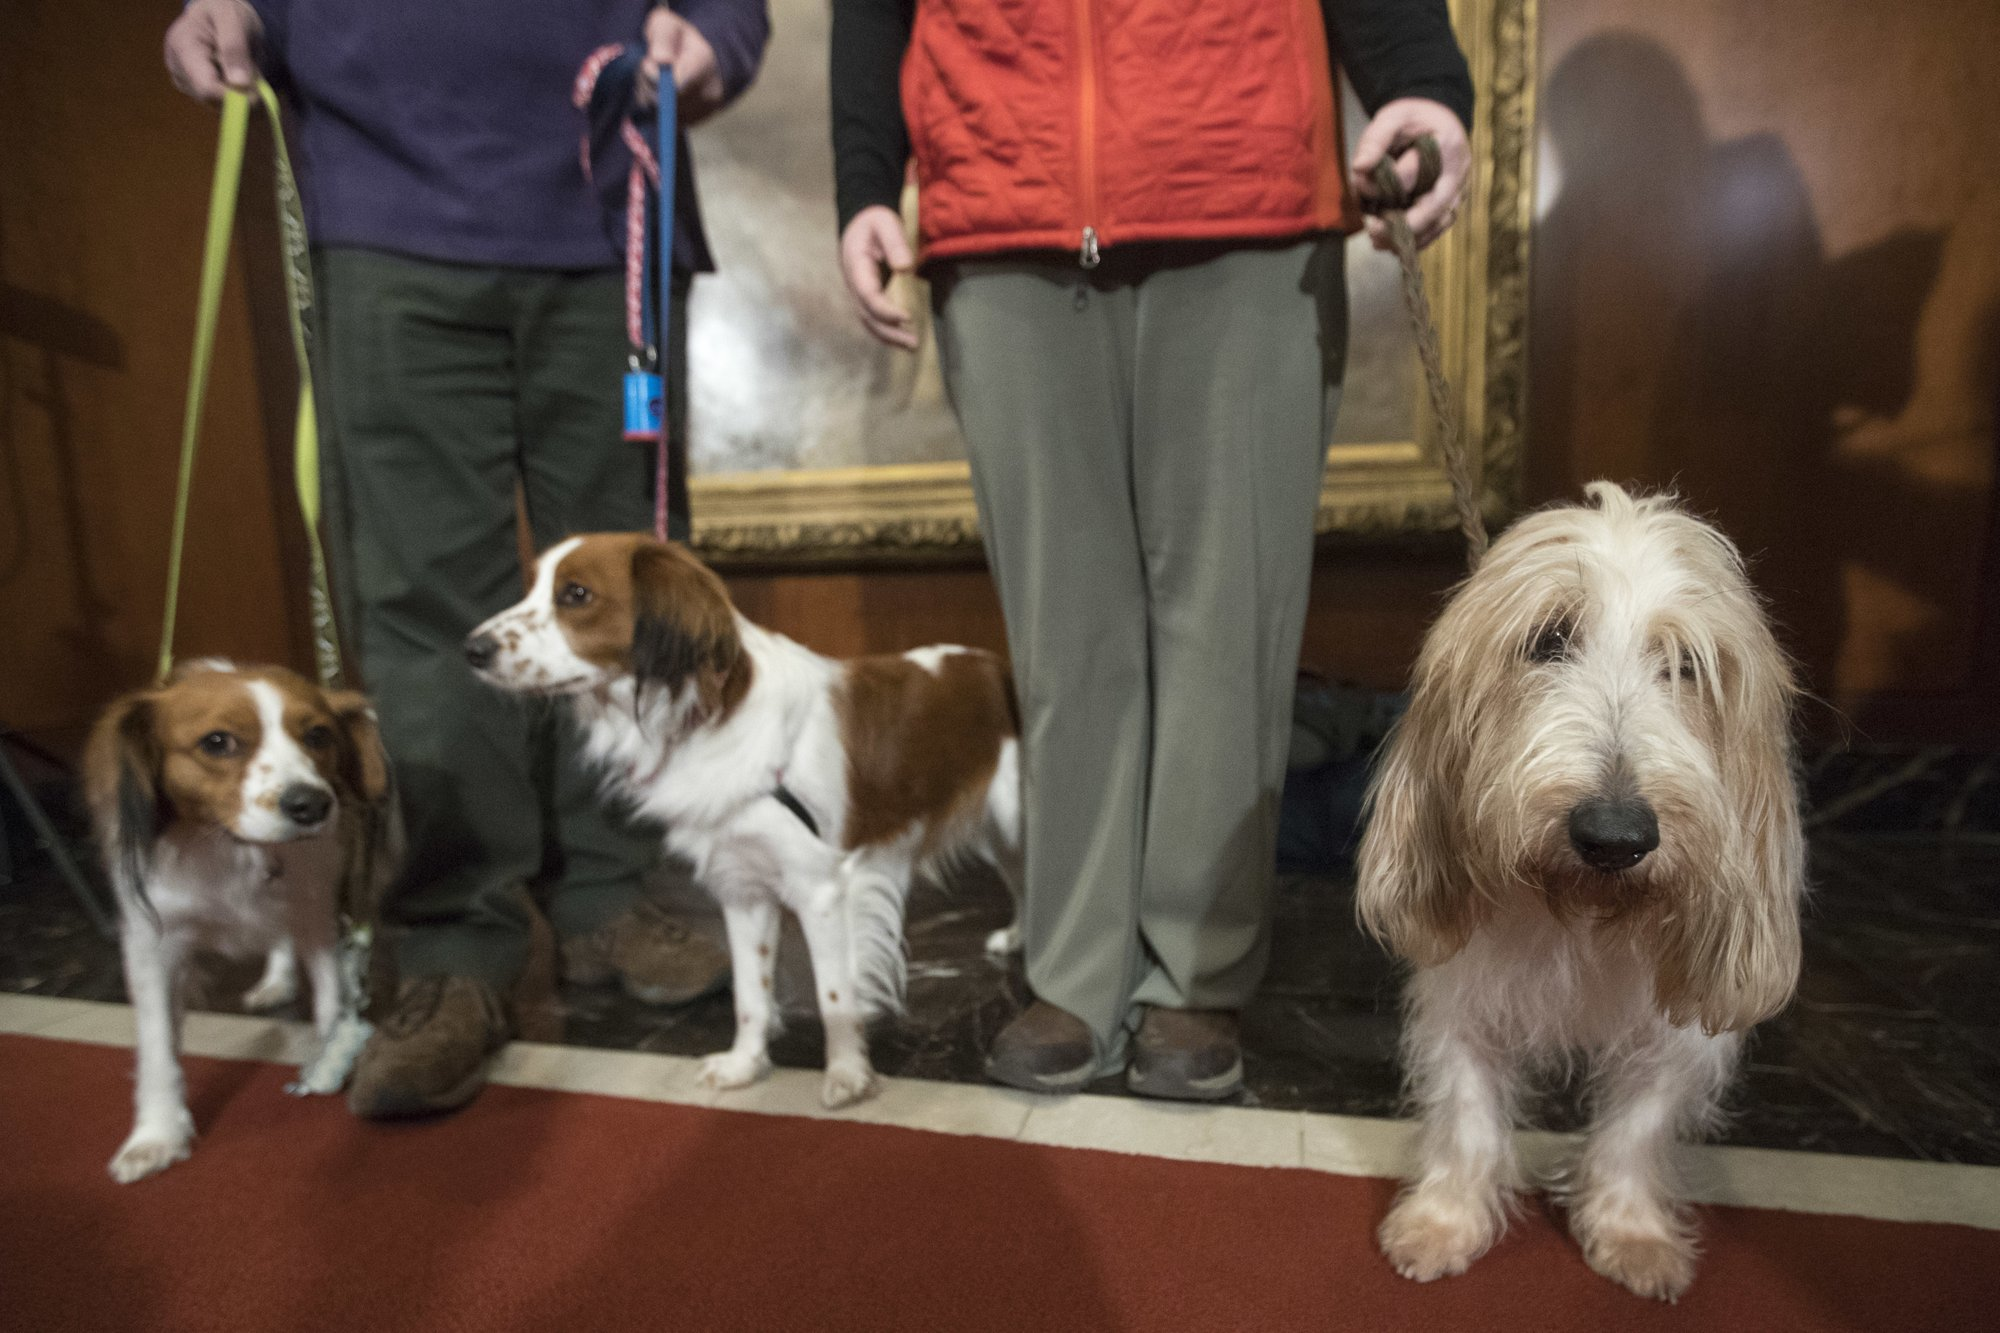 Kooiker-huh? An intro to Westminster dog show's new breeds